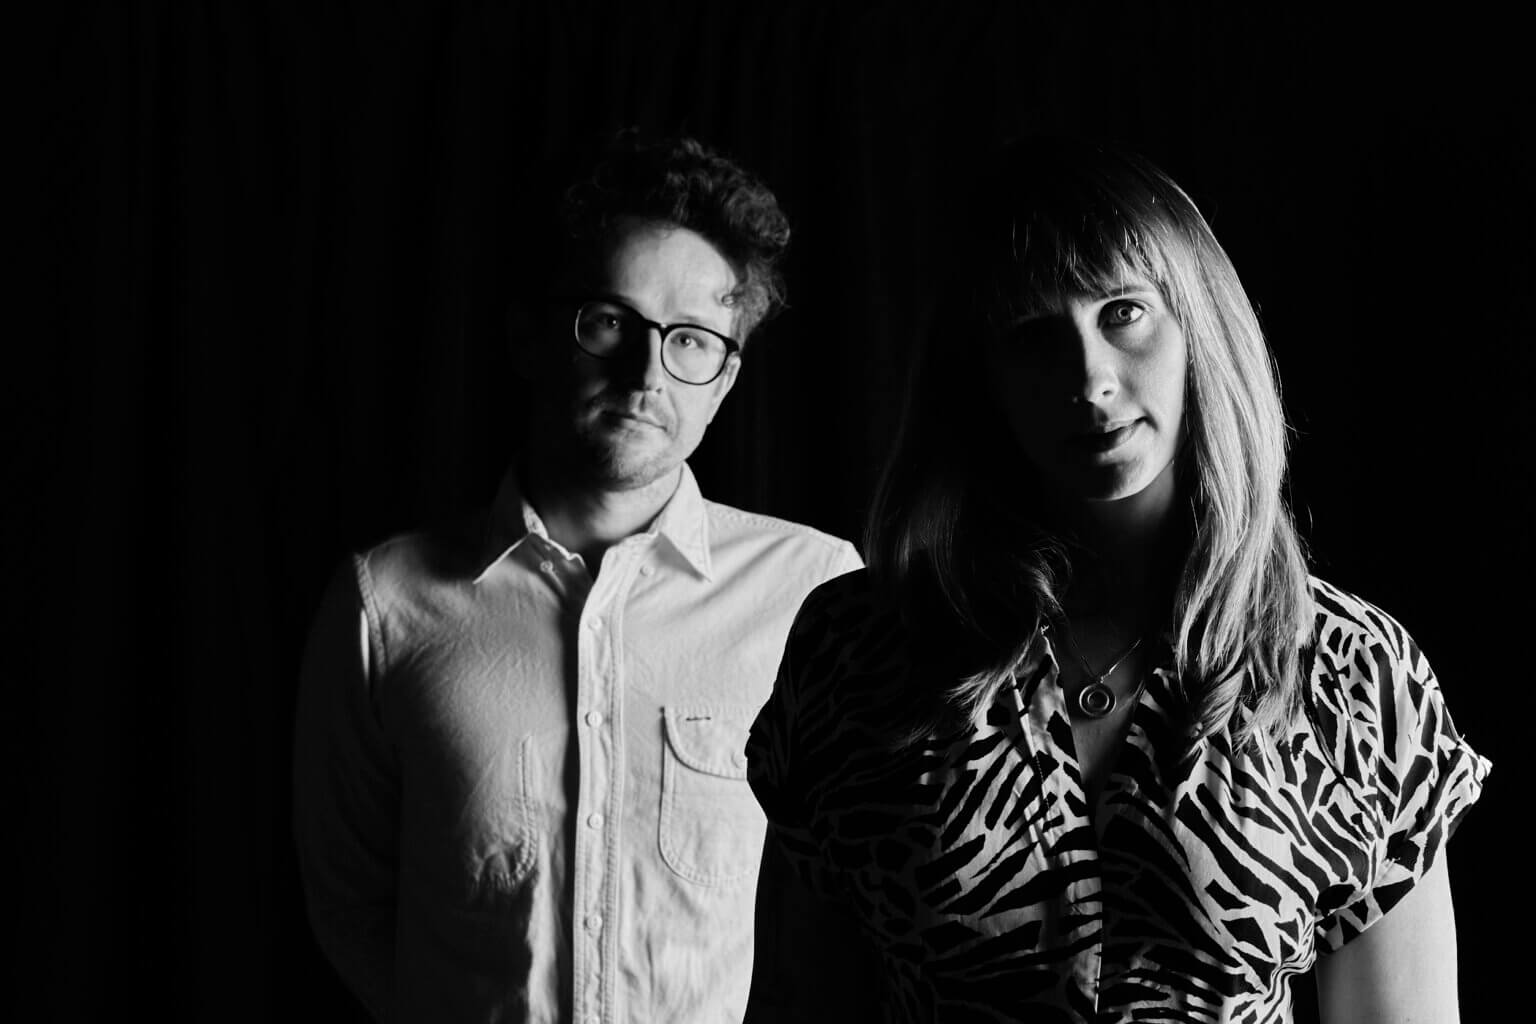 """Wye Oak Debut Video For """"Its Way With Me."""" The track is now available via Merge Records. Wye Oak play an online show July 1st"""